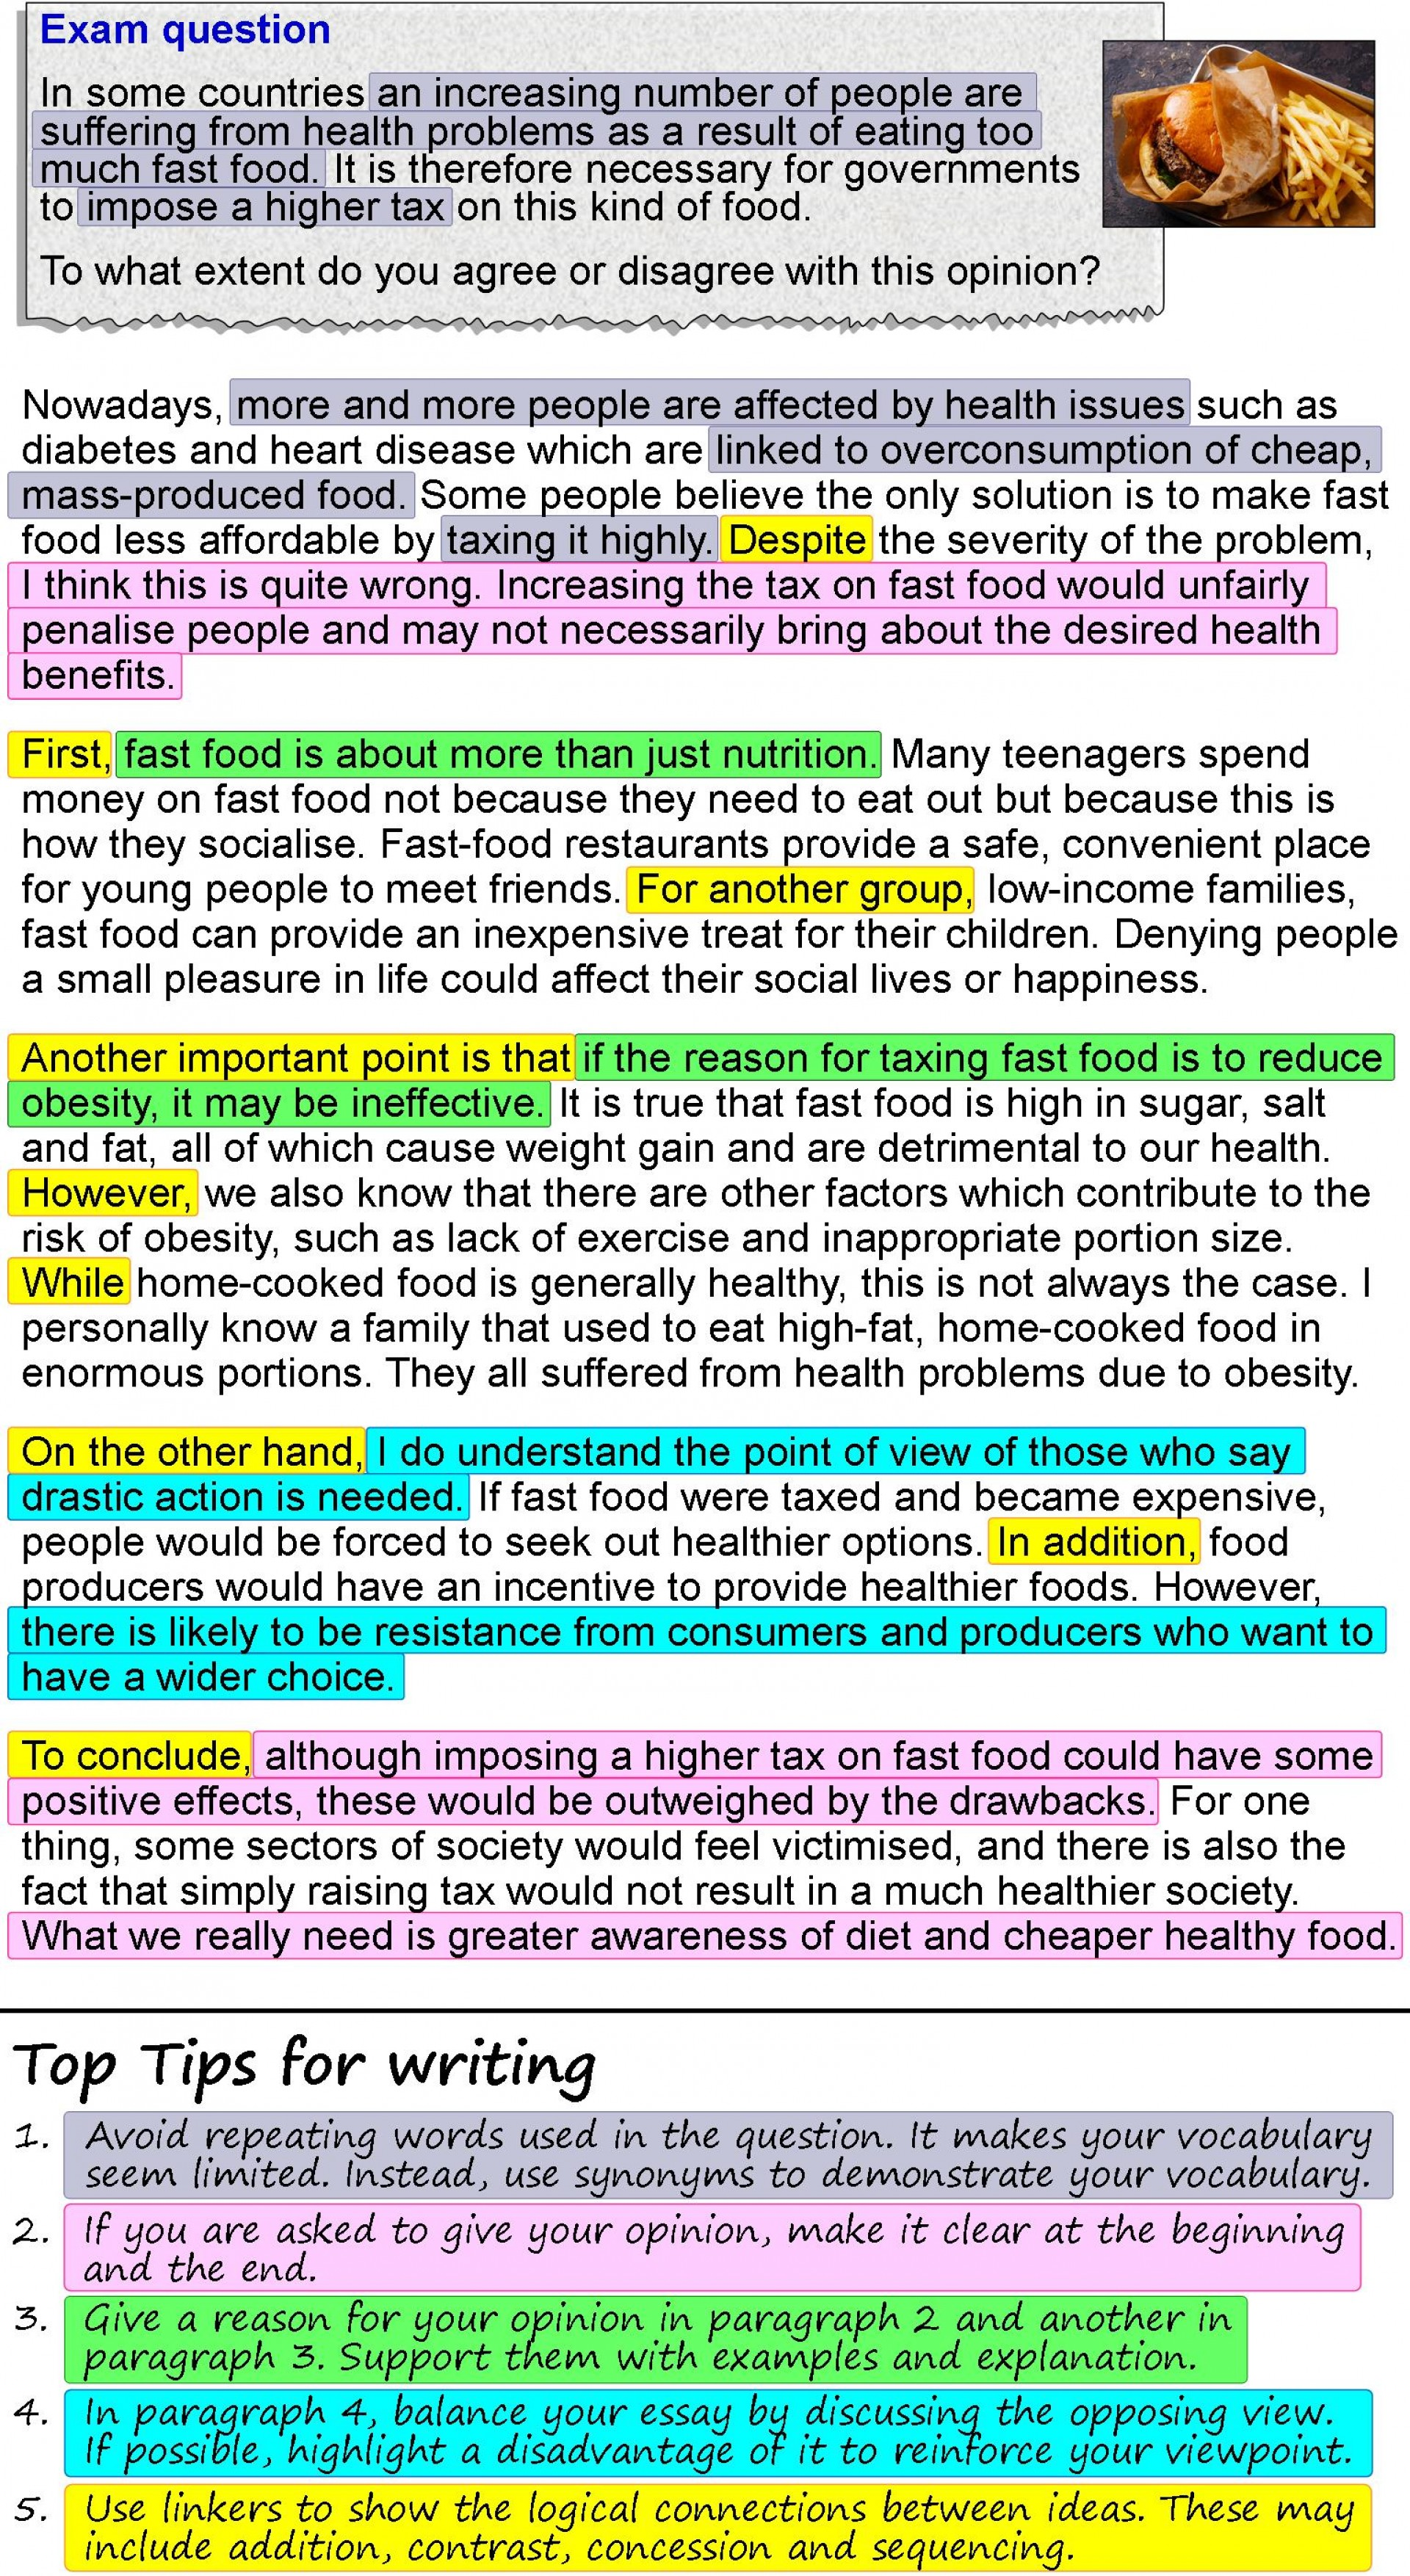 008 An Opinion Essay About Fast Food 4 Example Healthy Impressive Eating In French Pt3 Spm 1920